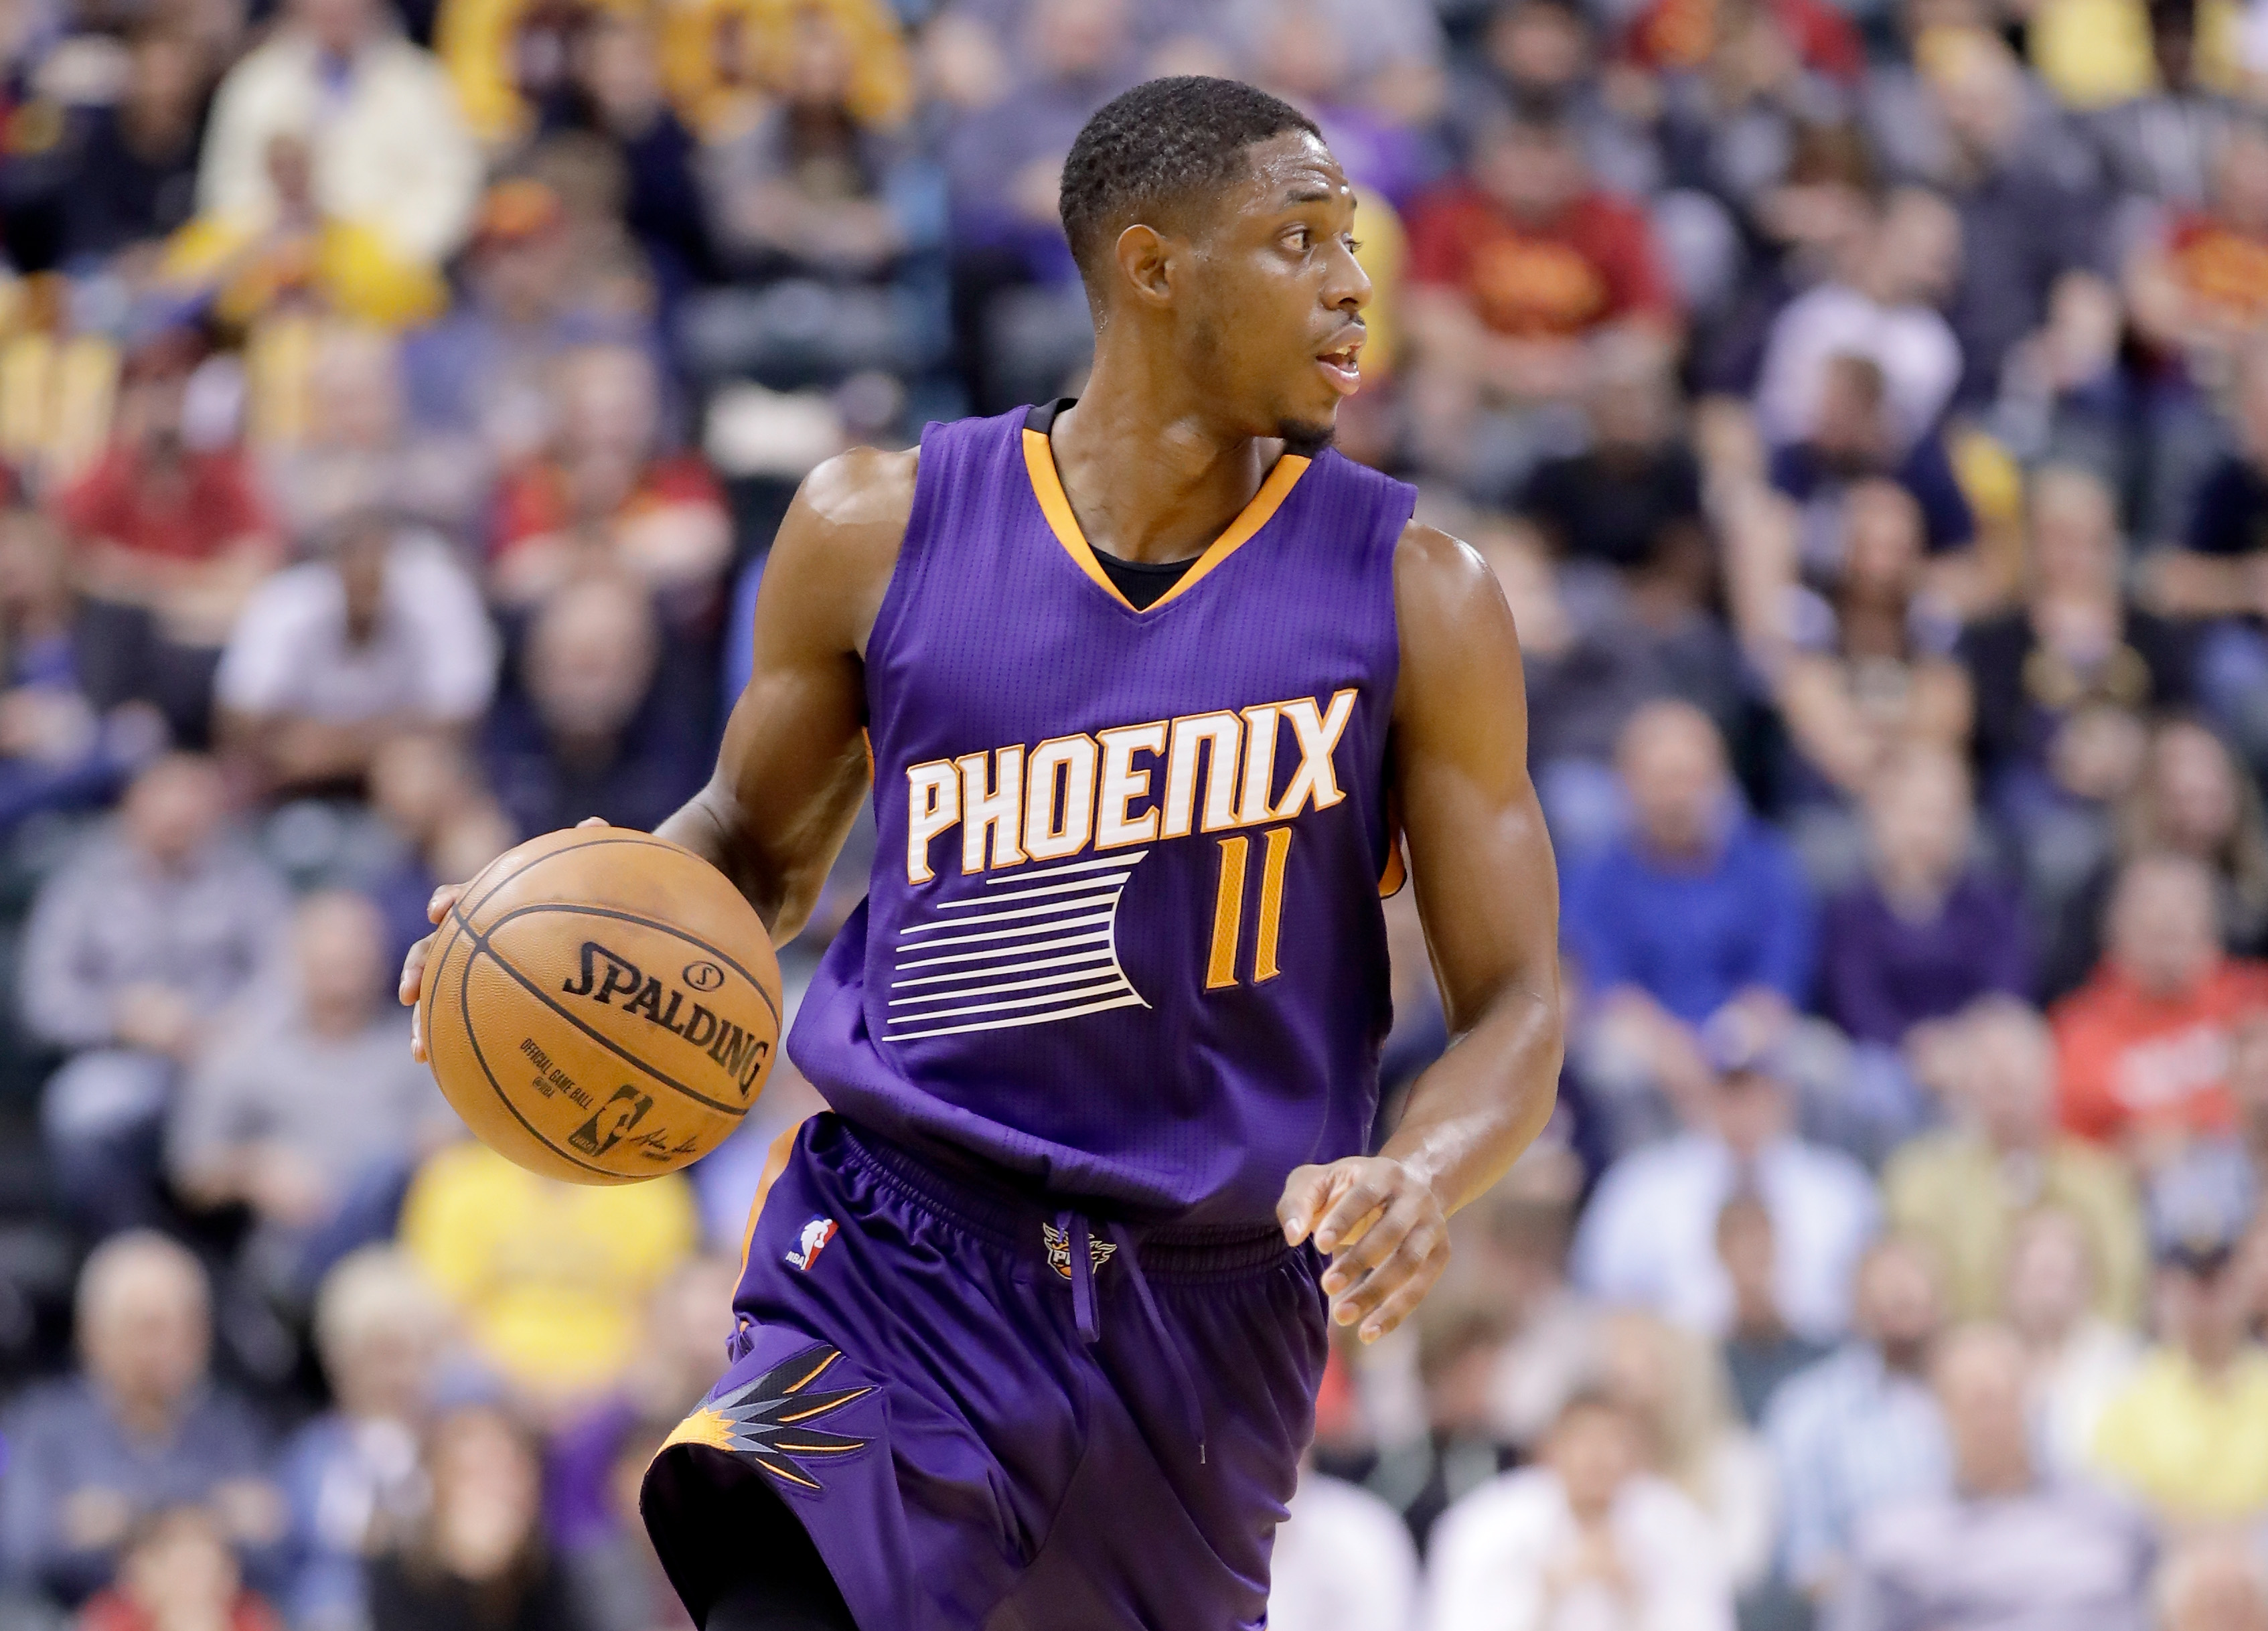 624274252-phoenix-suns-v-indiana-pacers.jpg